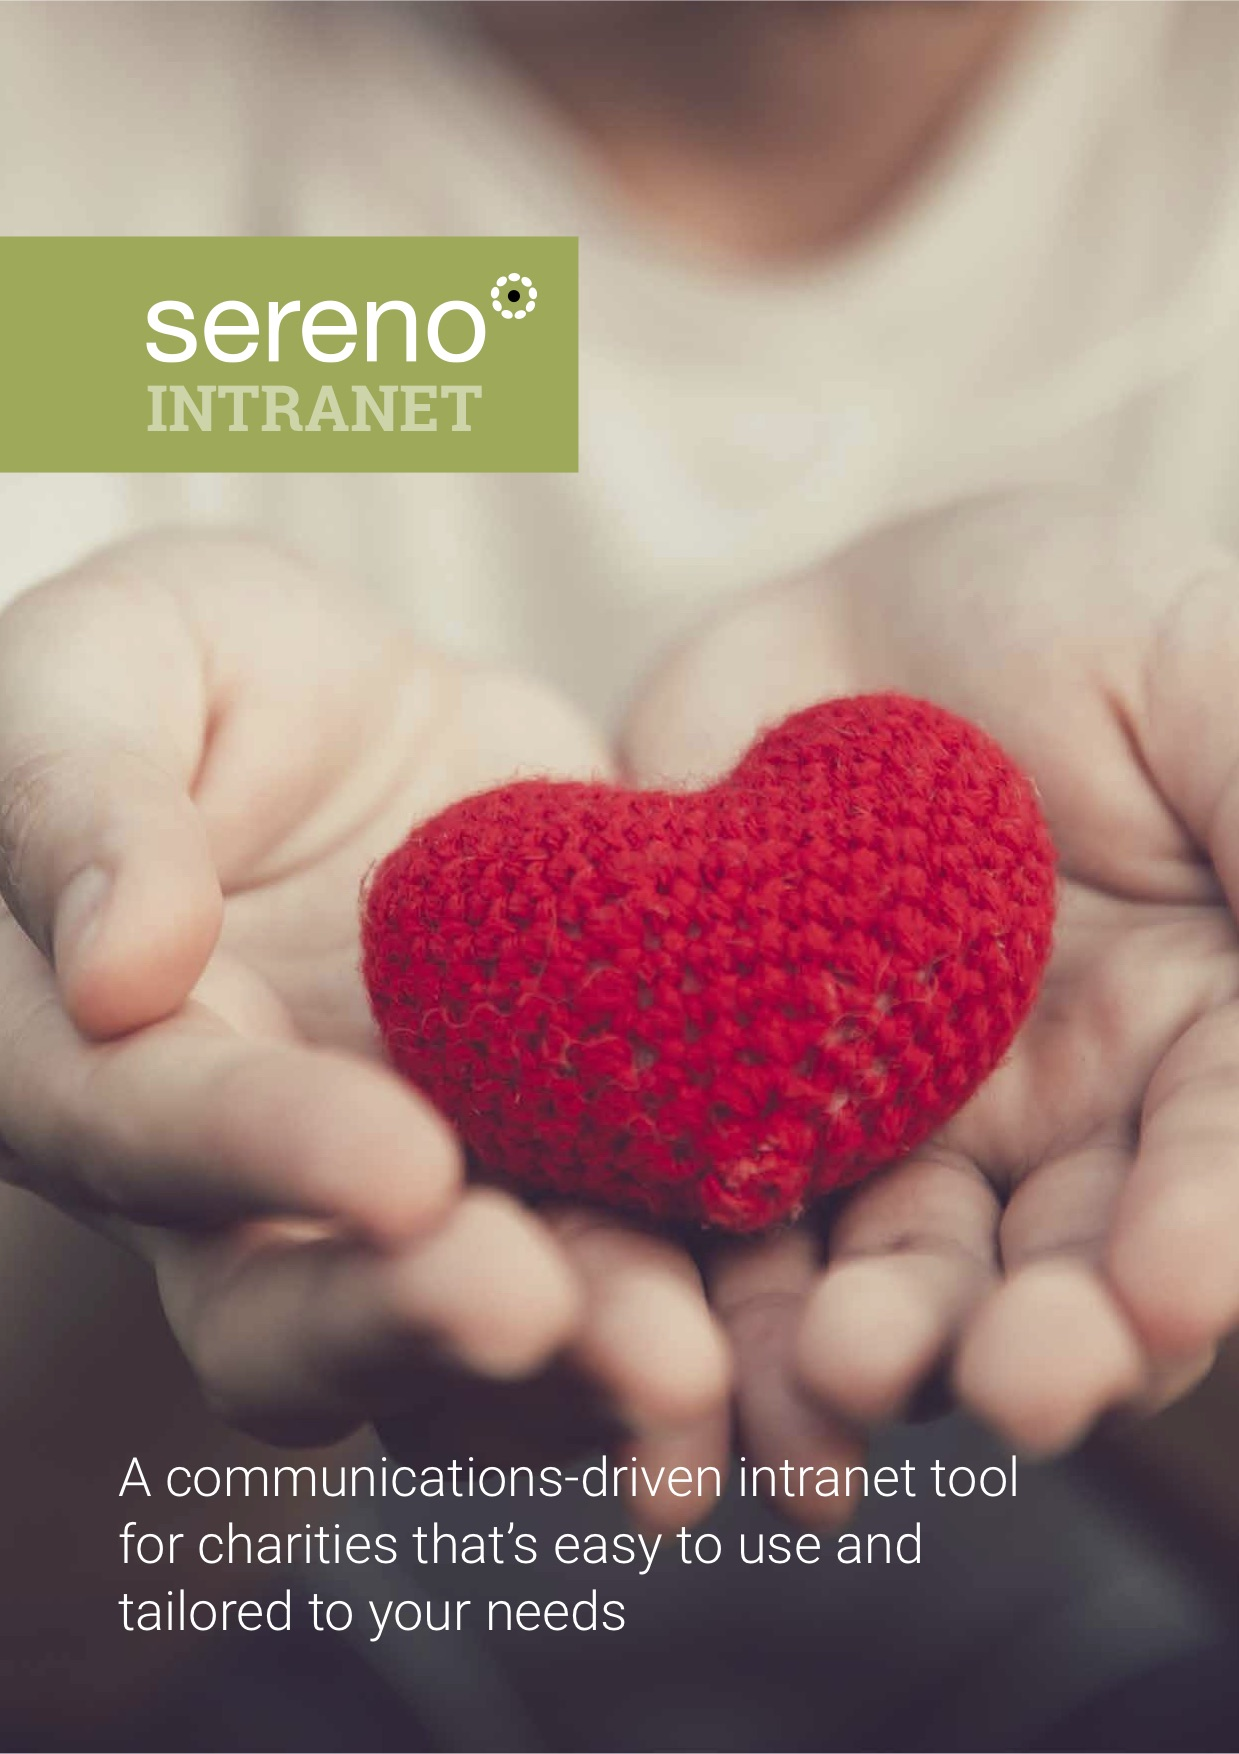 download sereno *intranet brochure